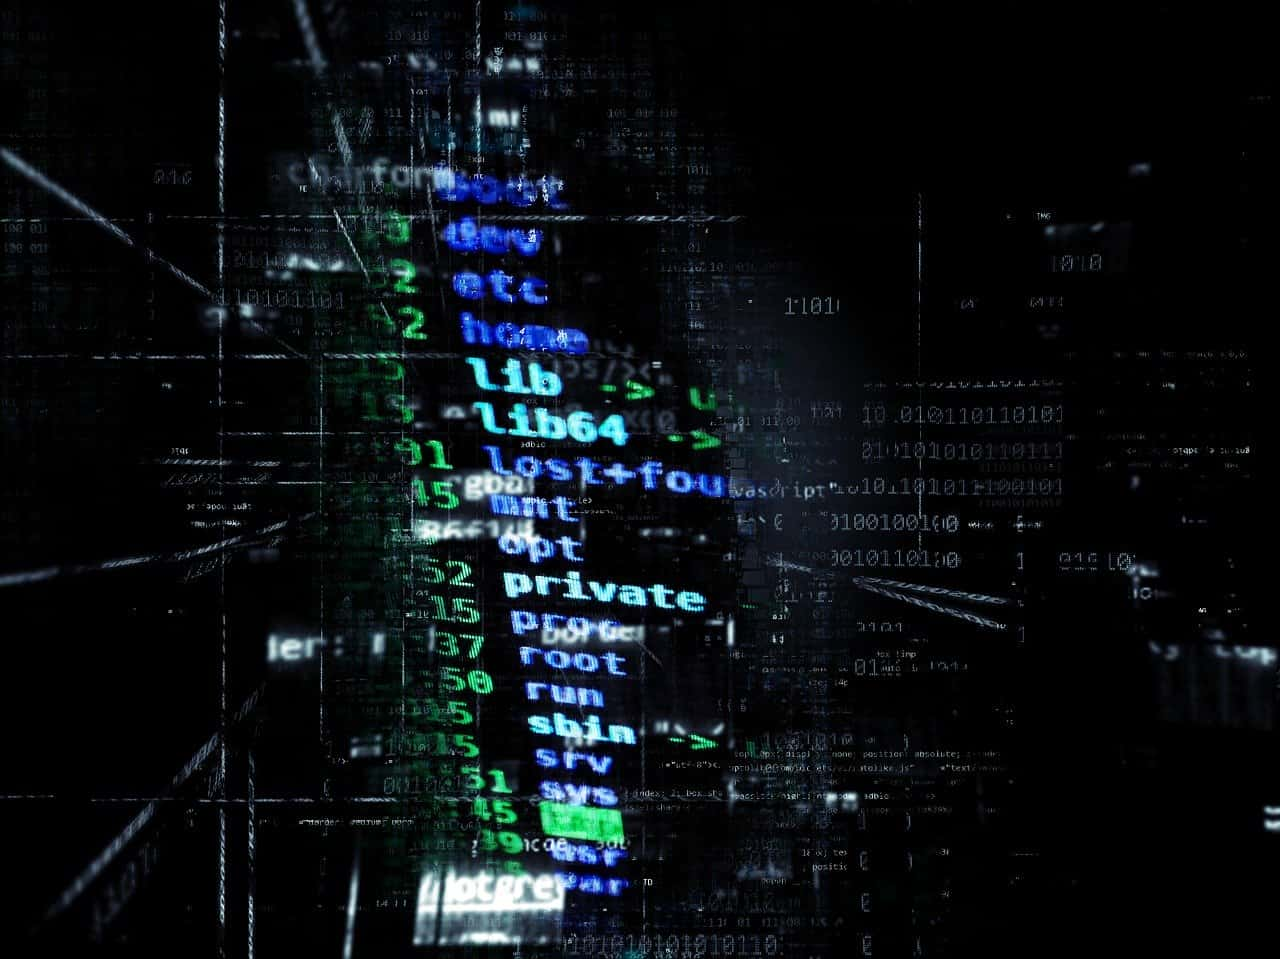 hacking cyber crime